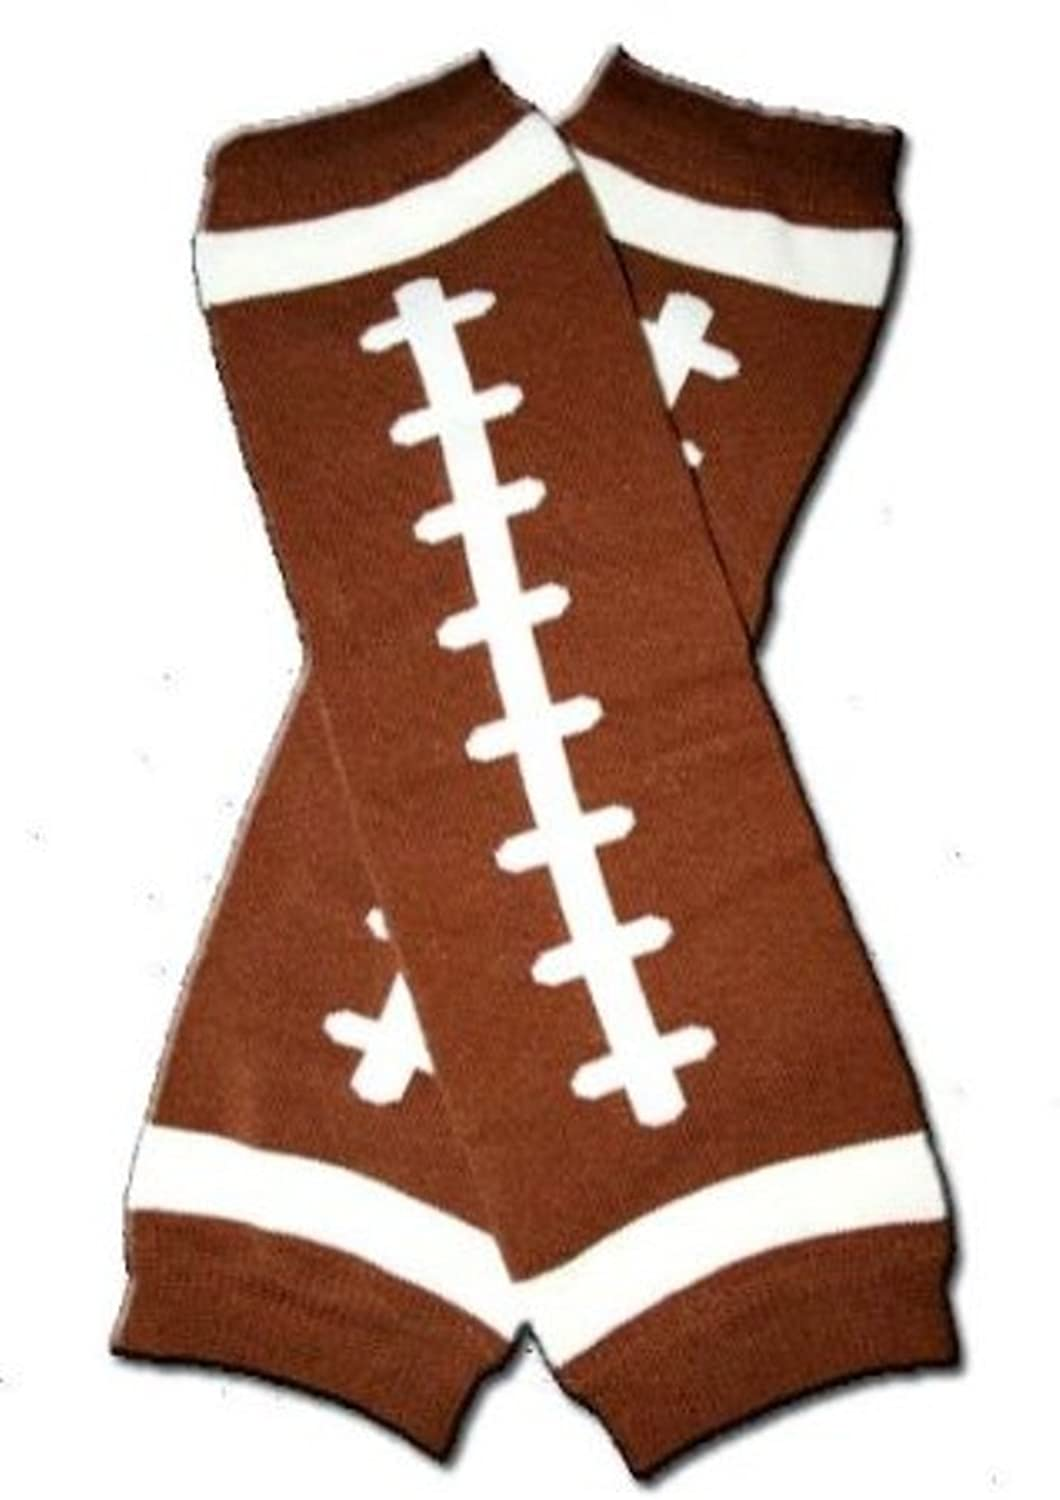 FOOTBALL Baby Leggings/Leggies/Leg Warmers for Cloth Diapers - UNISEX & ONE SIZE hot sale